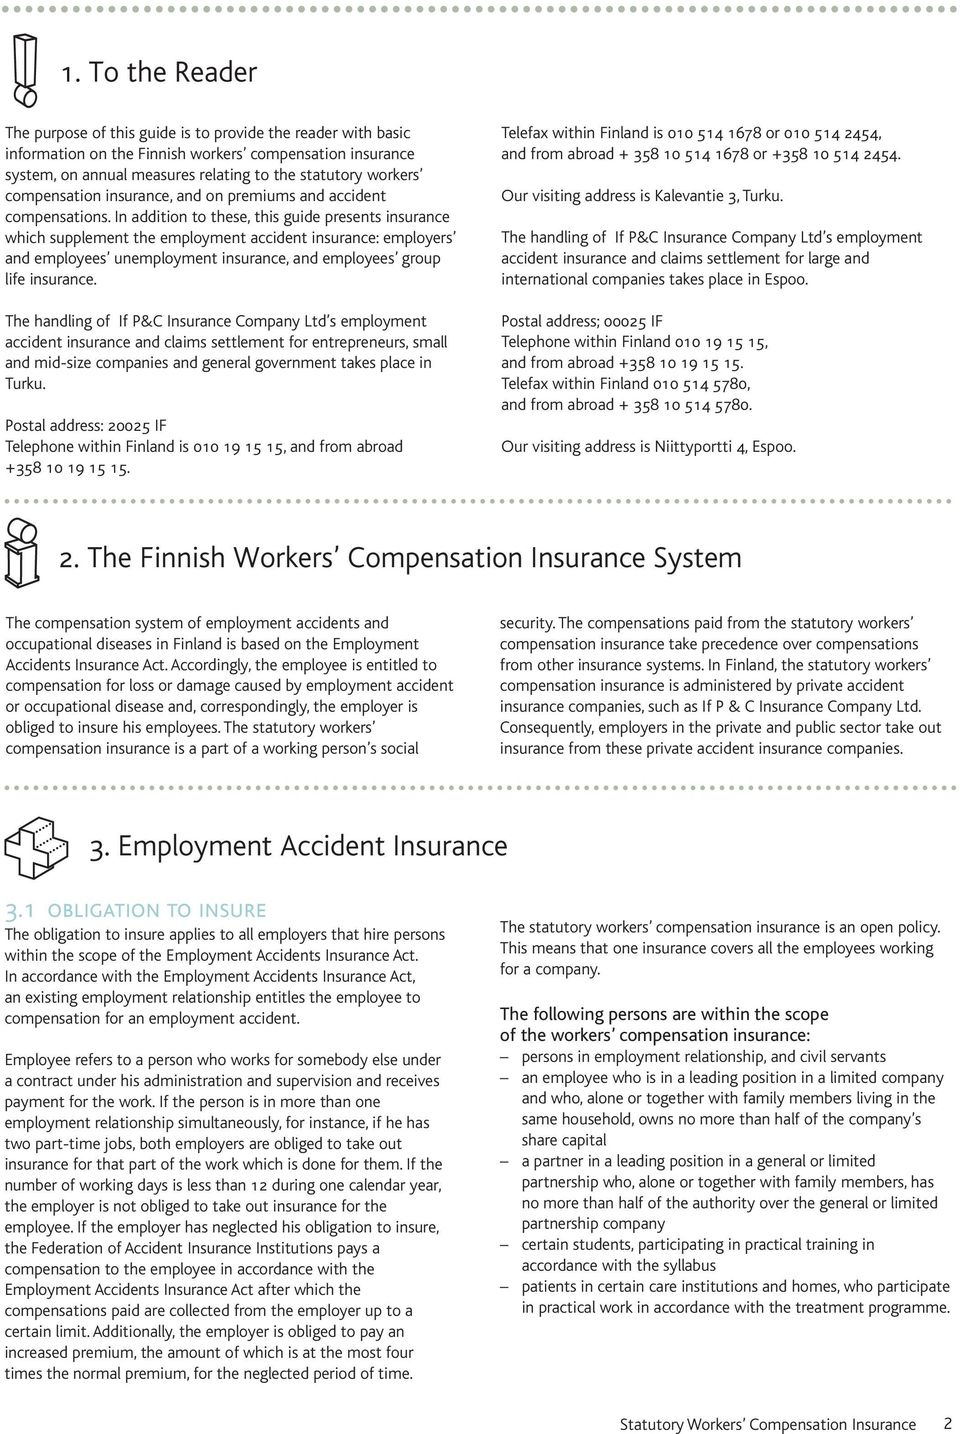 In addition to these, this guide presents insurance which supplement the employment accident insurance: employers and employees unemployment insurance, and employees group life insurance.